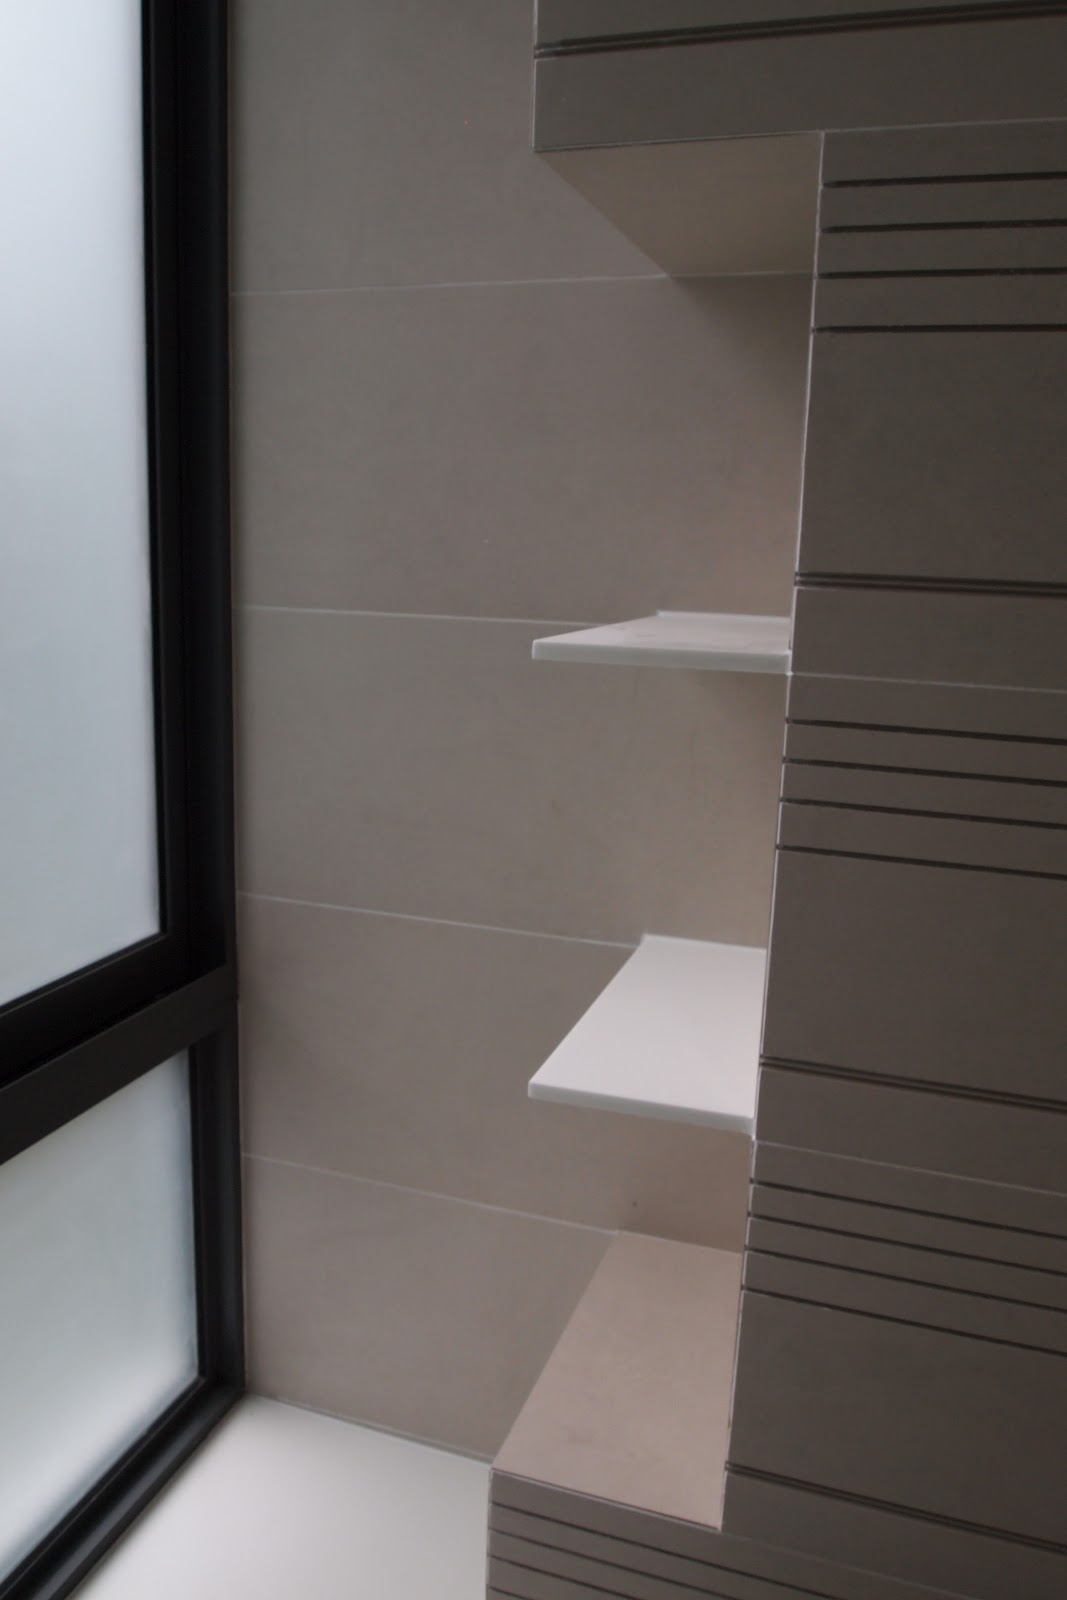 Plaster Ceiling & Partition Drywall Singapore: Bathroom ...